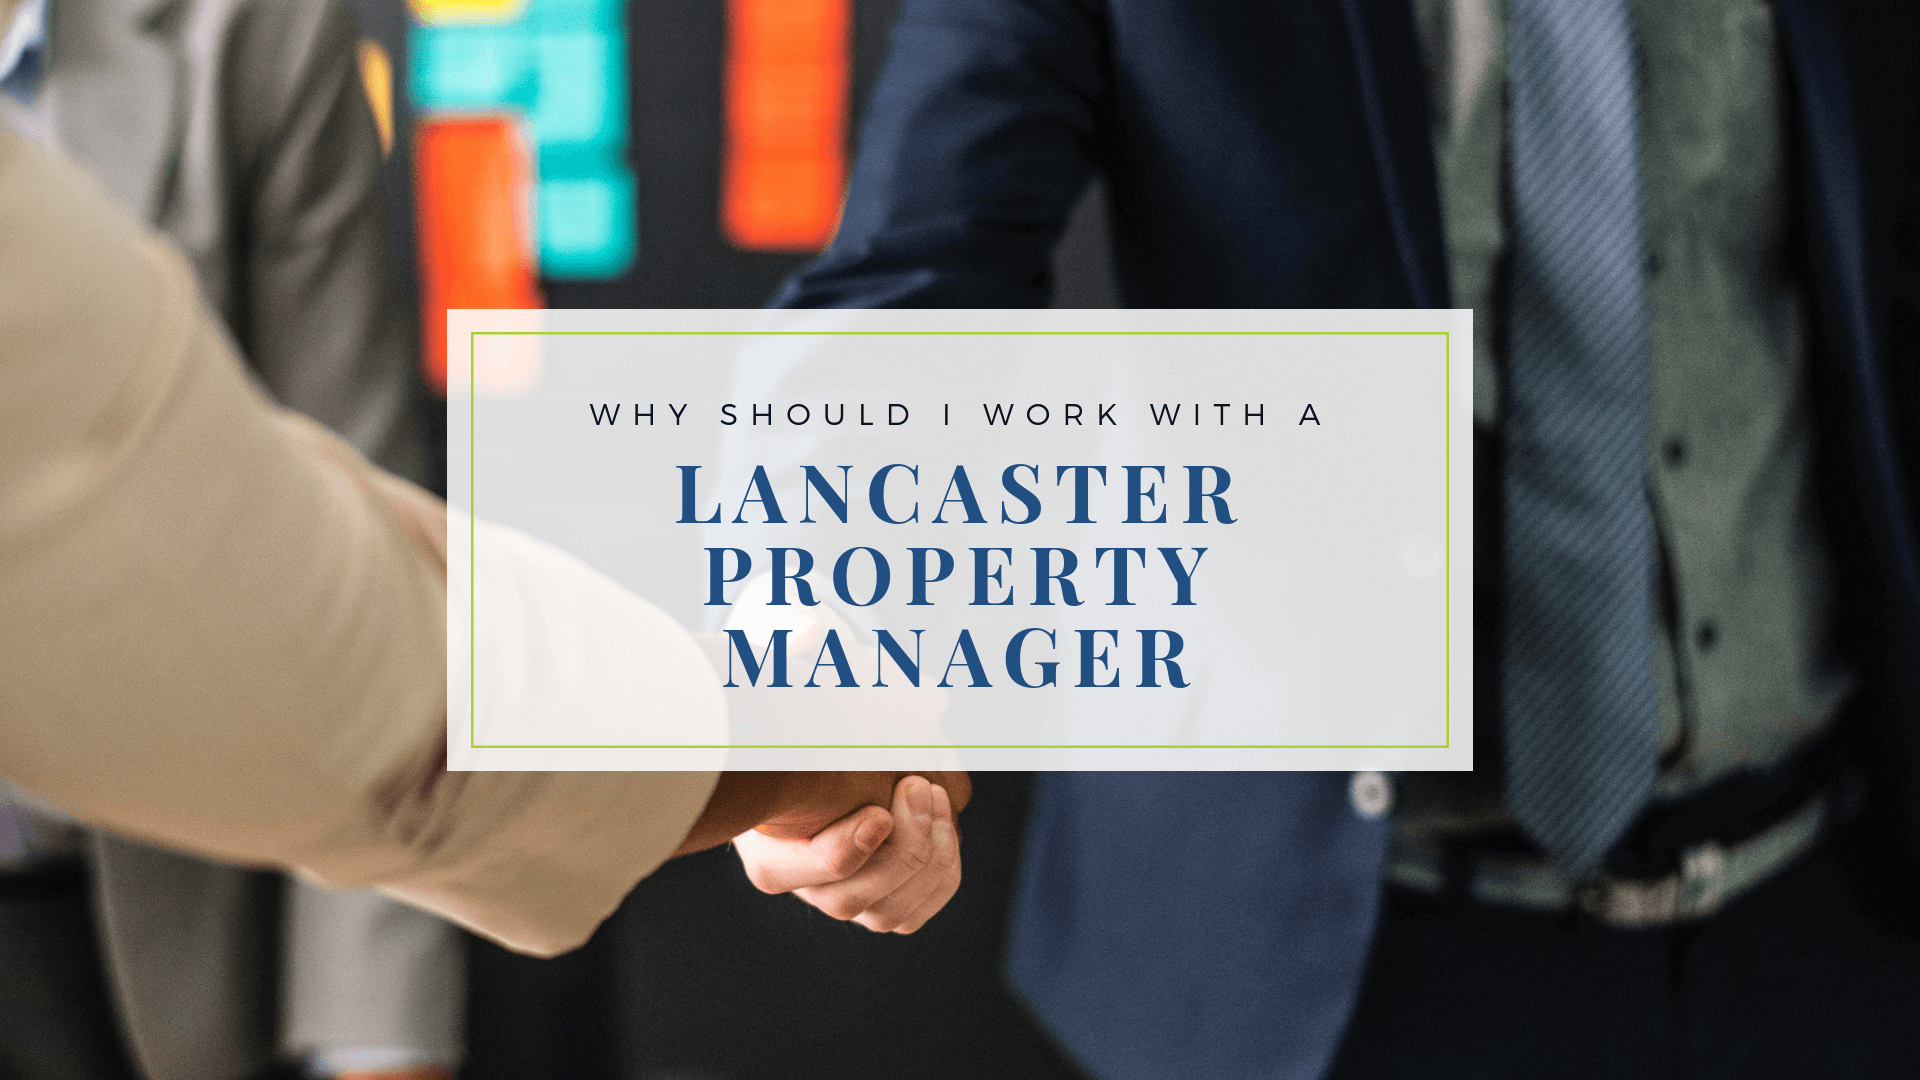 Why Should I Work with a Lancaster Property Manager When Choosing an Investment Property?